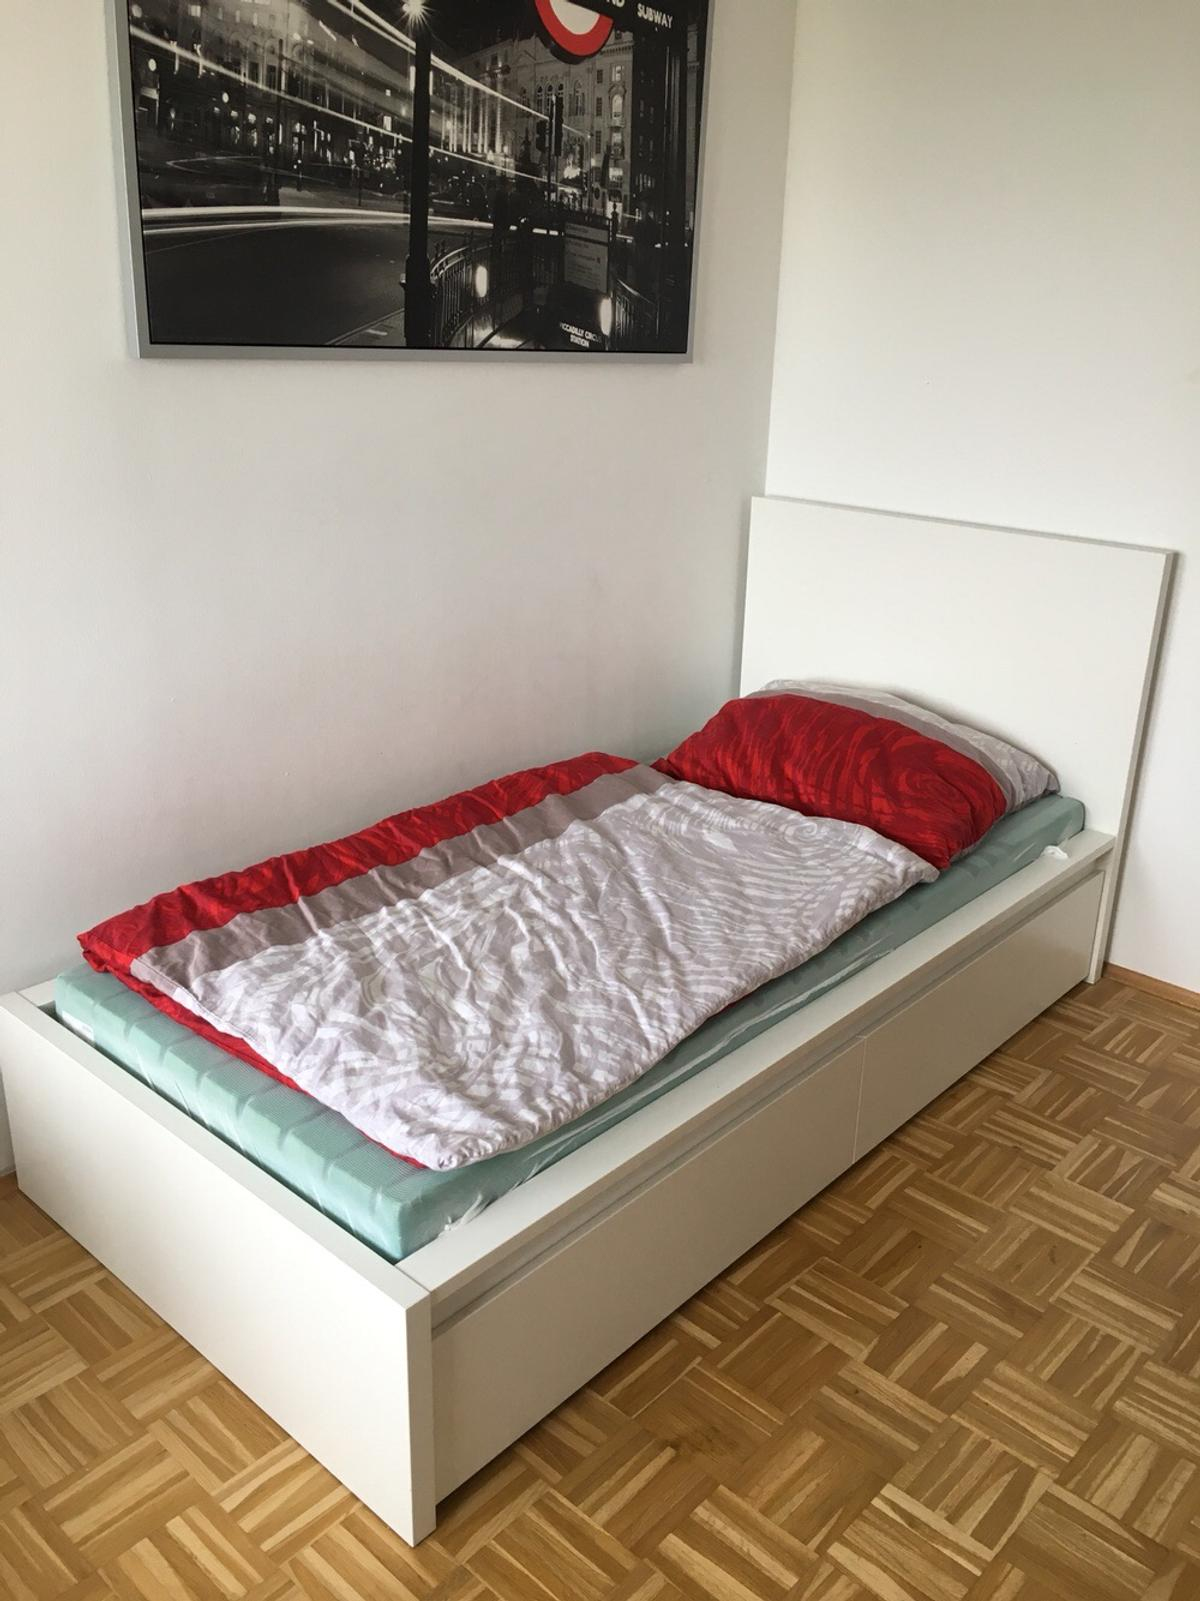 90x200 Bett Ikea Malm Bett 90x200 In 4614 Marchtrenk For 125 00 For Sale Shpock